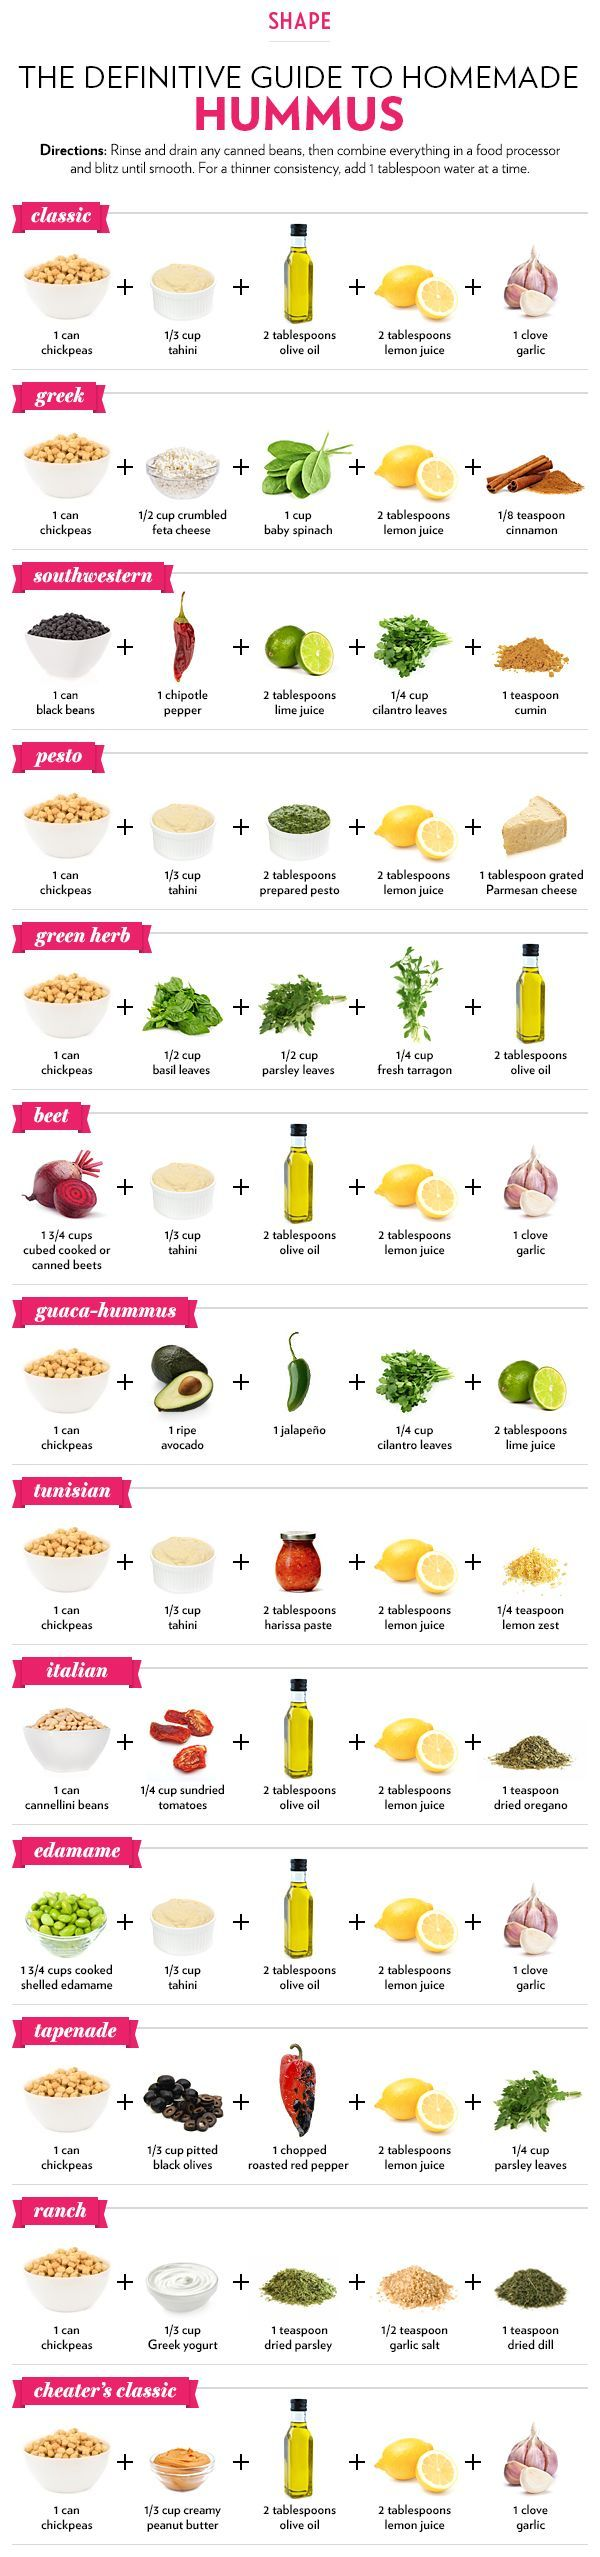 How to Make Hummus by shape #Infographic #Hummus